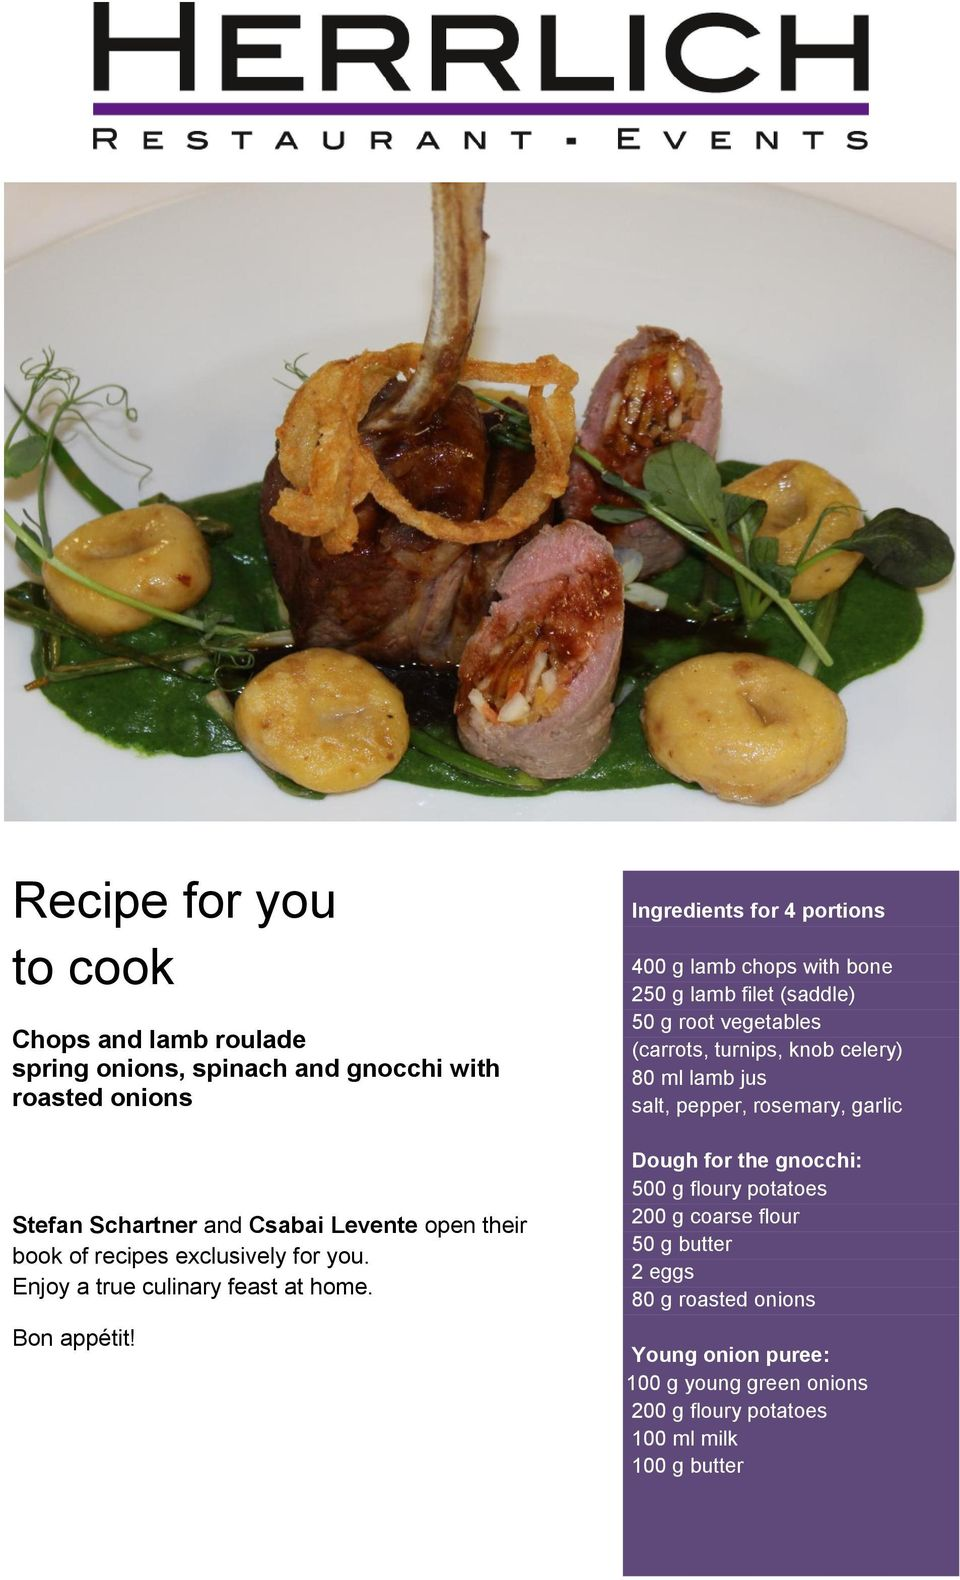 Ingredients for 4 portions 400 g lamb chops with bone 250 g lamb filet (saddle) 50 g root vegetables (carrots, turnips, knob celery) 80 ml lamb jus